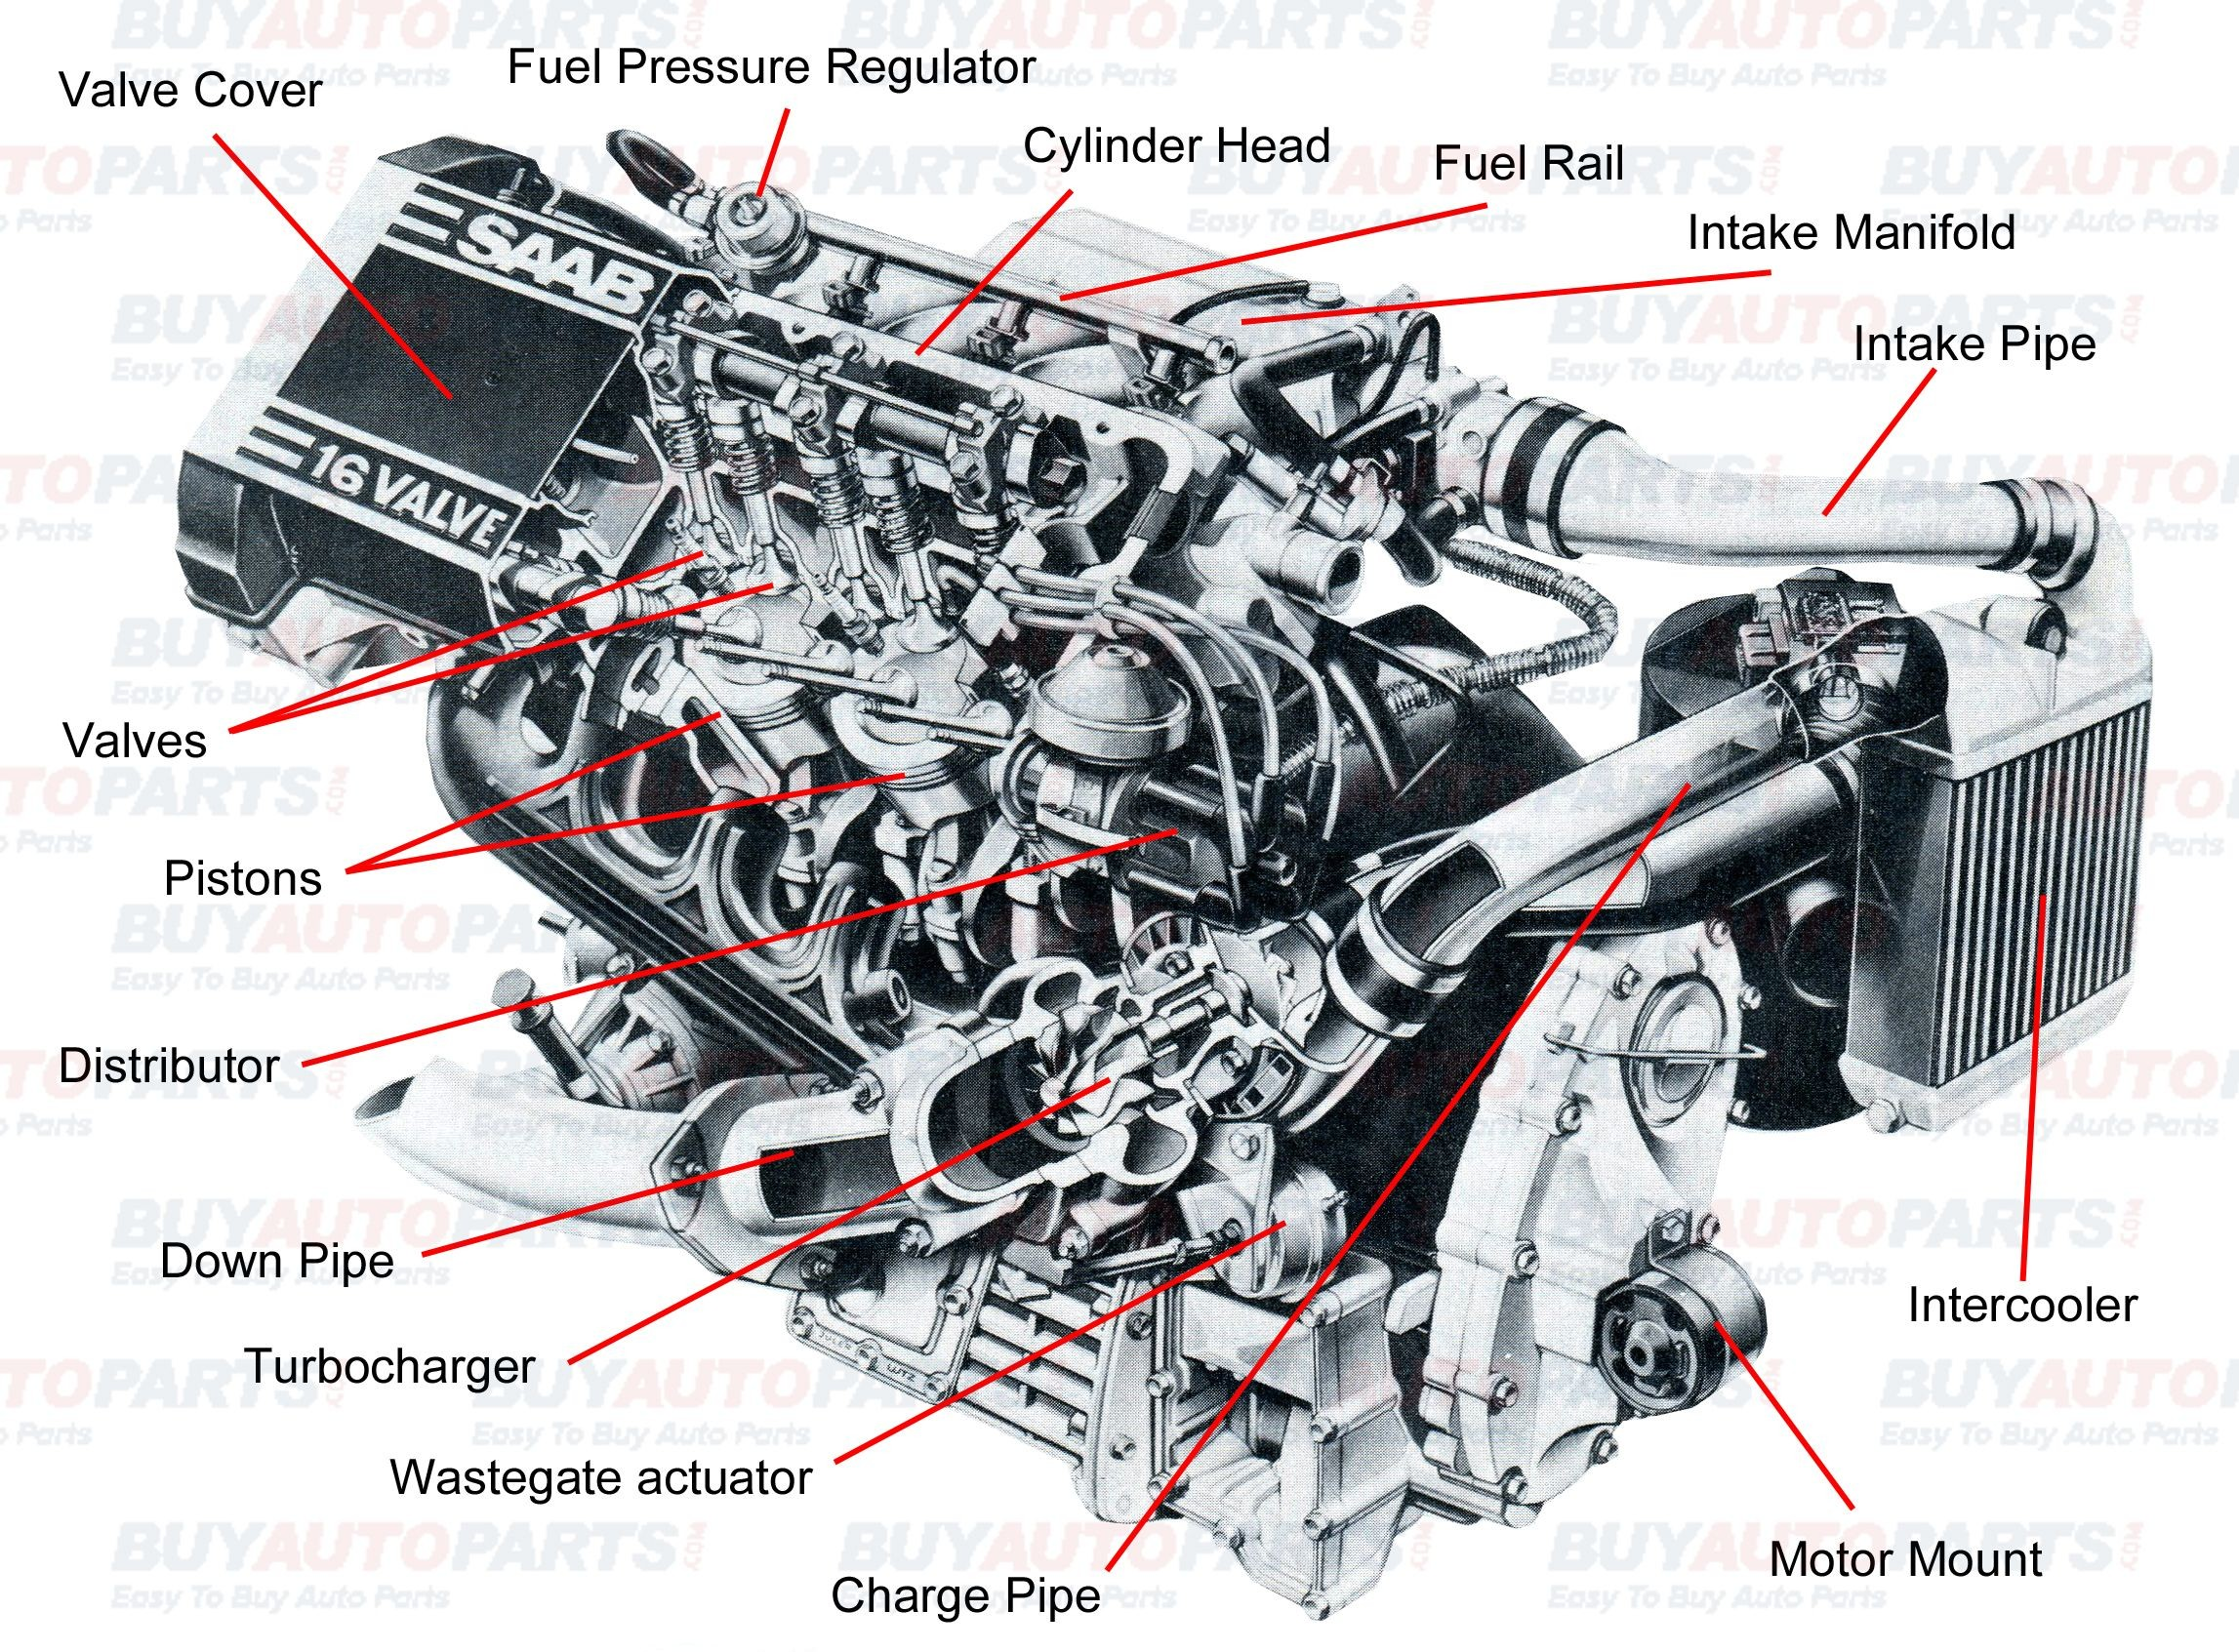 Car Ac Parts Diagram All Internal Bustion Engines Have the Same Basic Ponents the Of Car Ac Parts Diagram